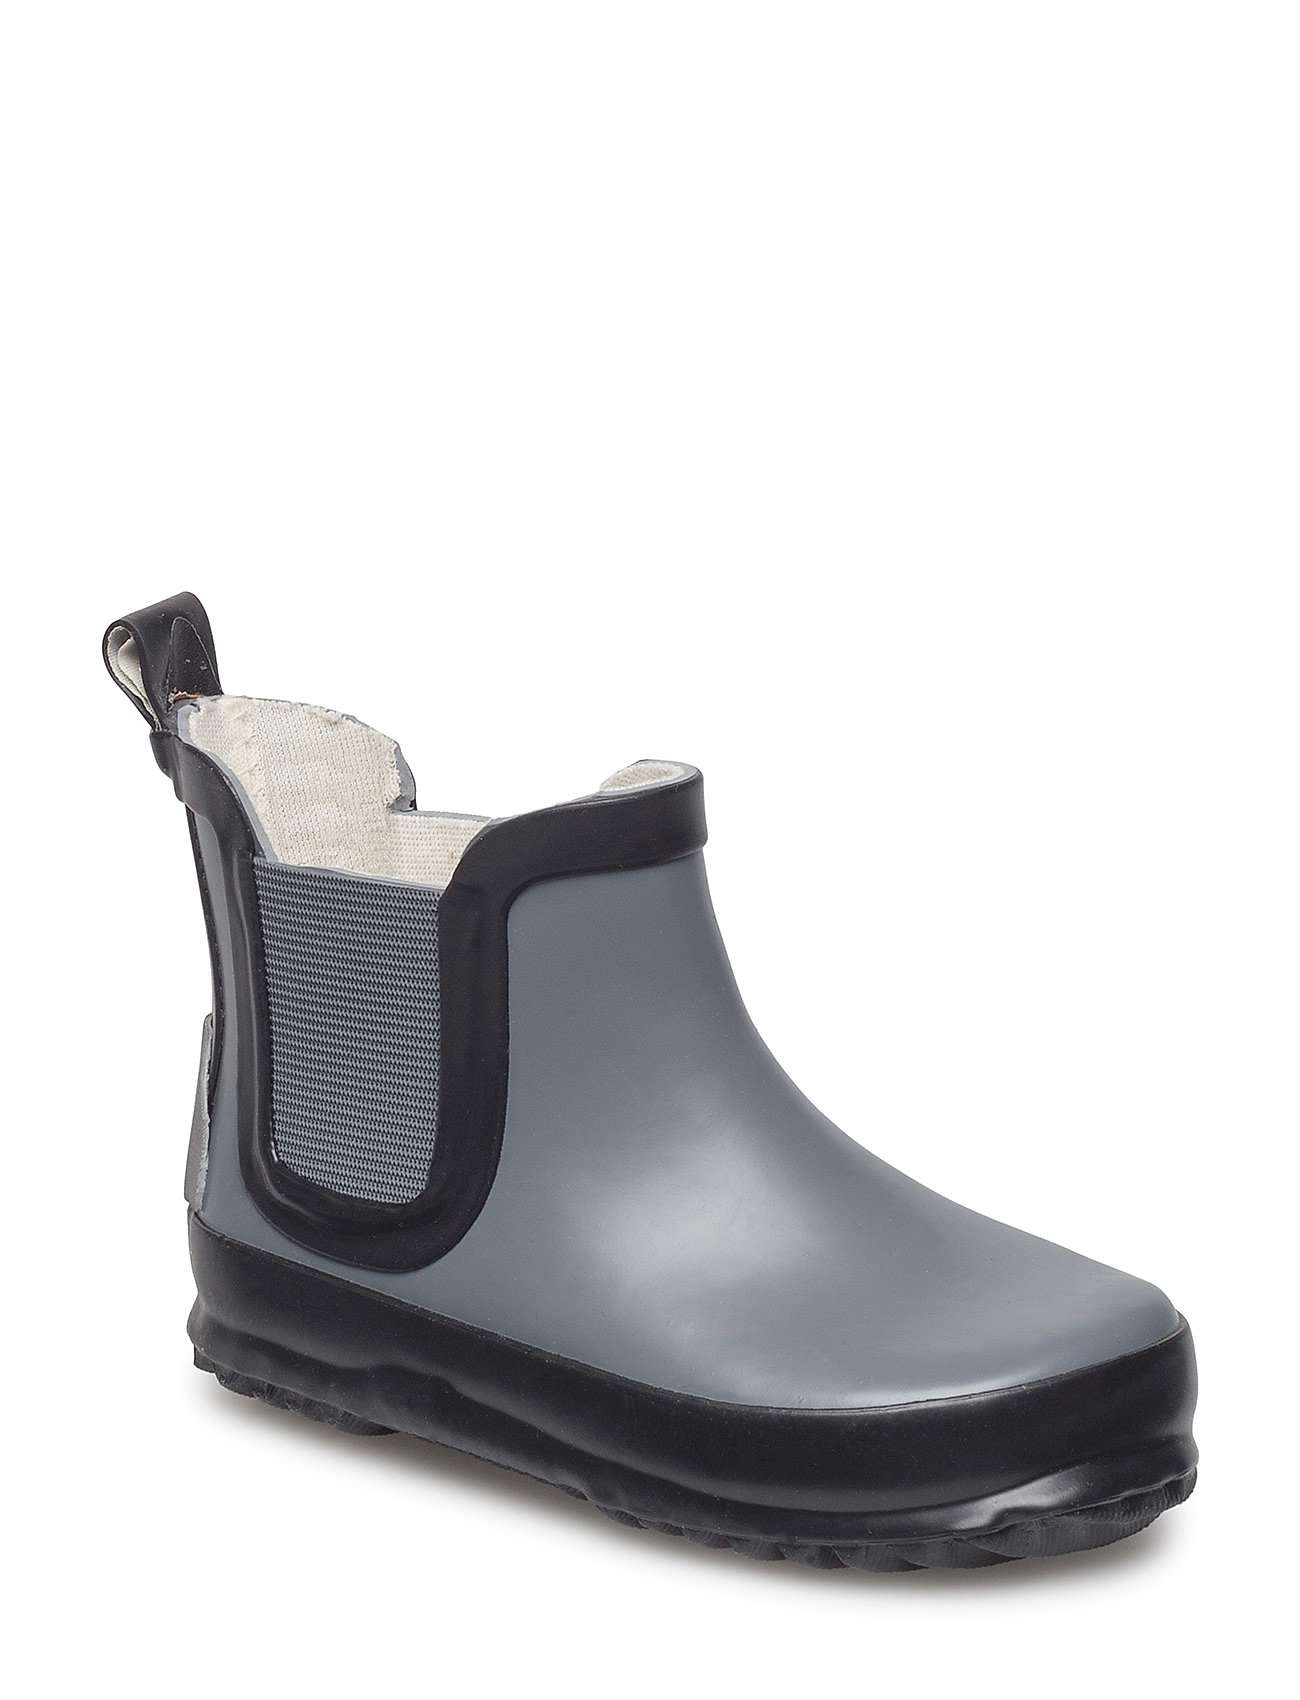 Image of Short Wellies Gummistøvler Grå Mikk-Line (2987797511)